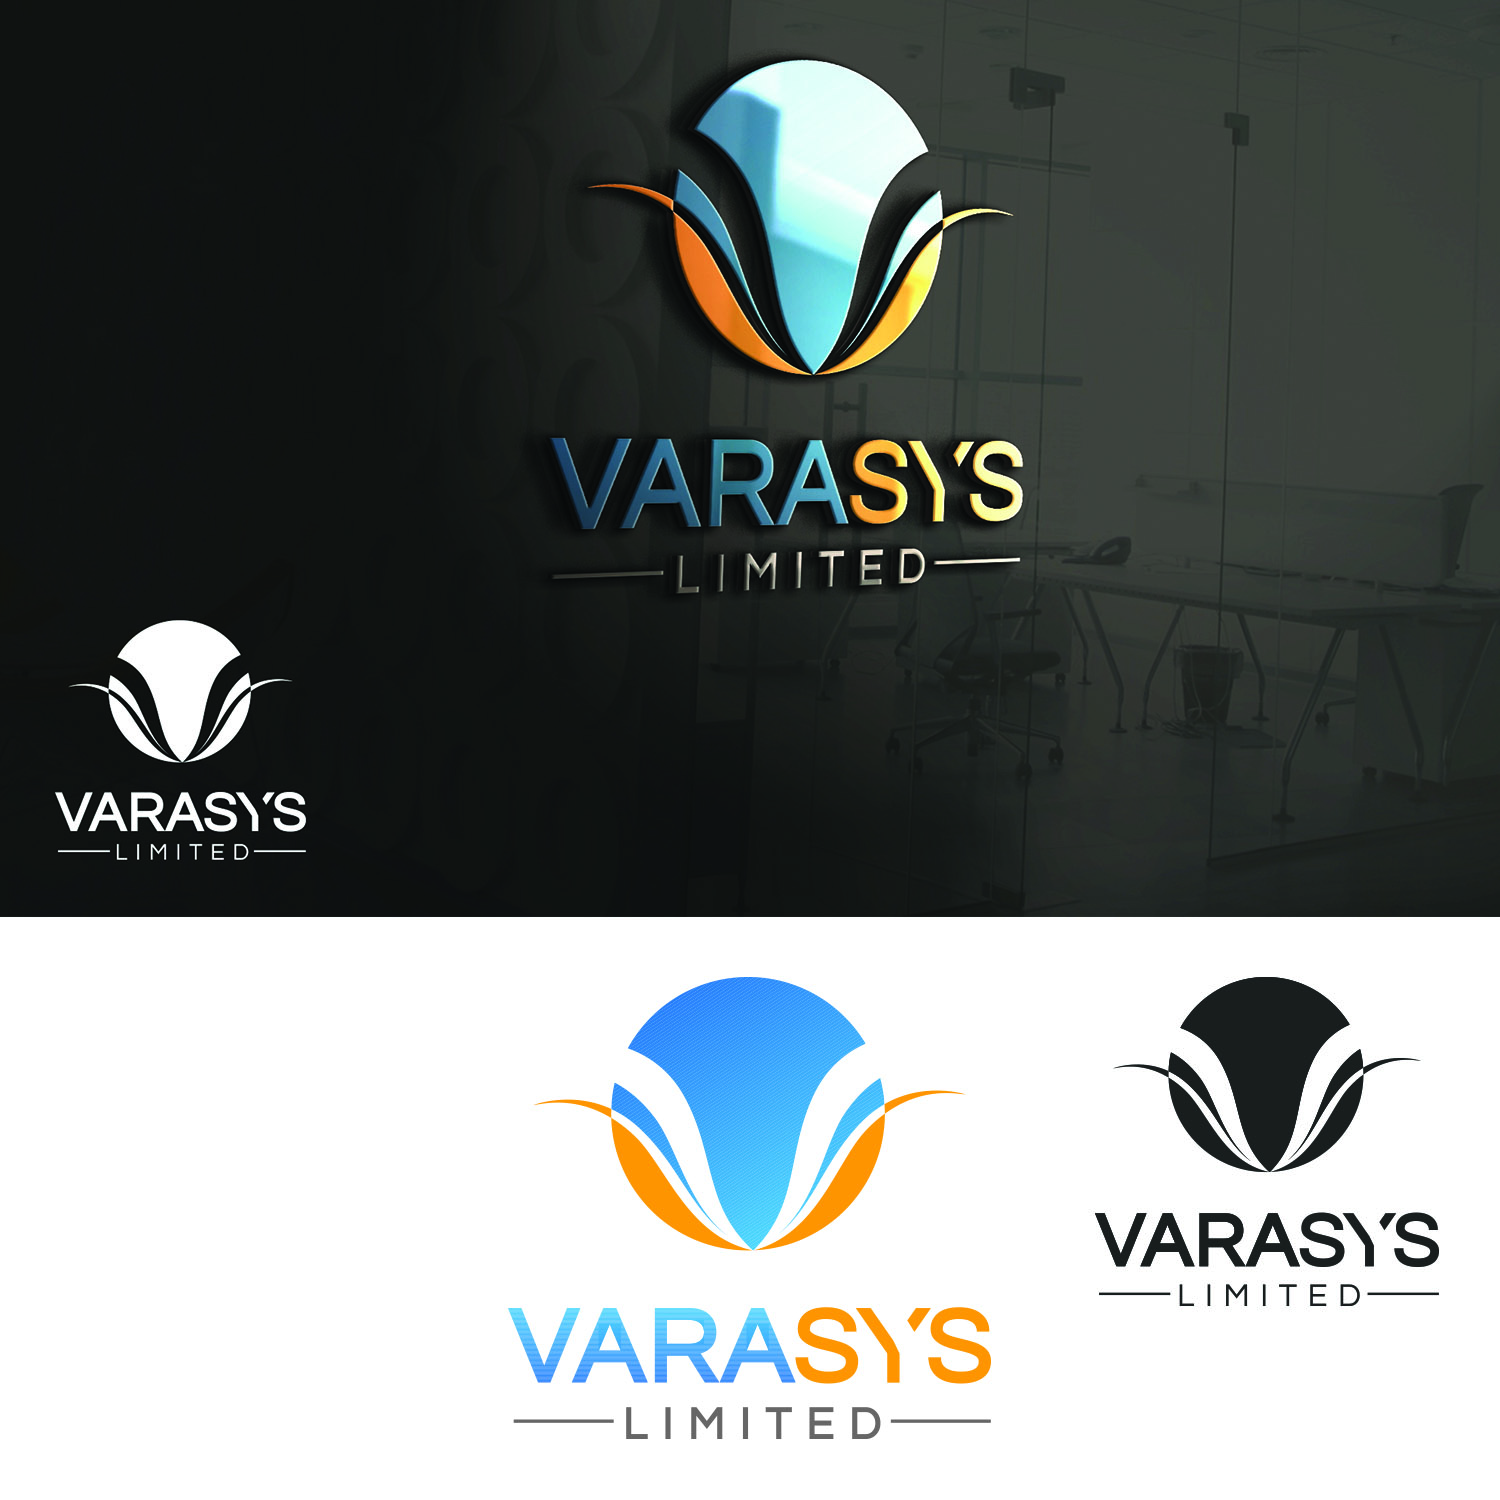 Logo Design by Umair ahmed Iqbal - Entry No. 60 in the Logo Design Contest Artistic Logo Design for VARASYS Limited.